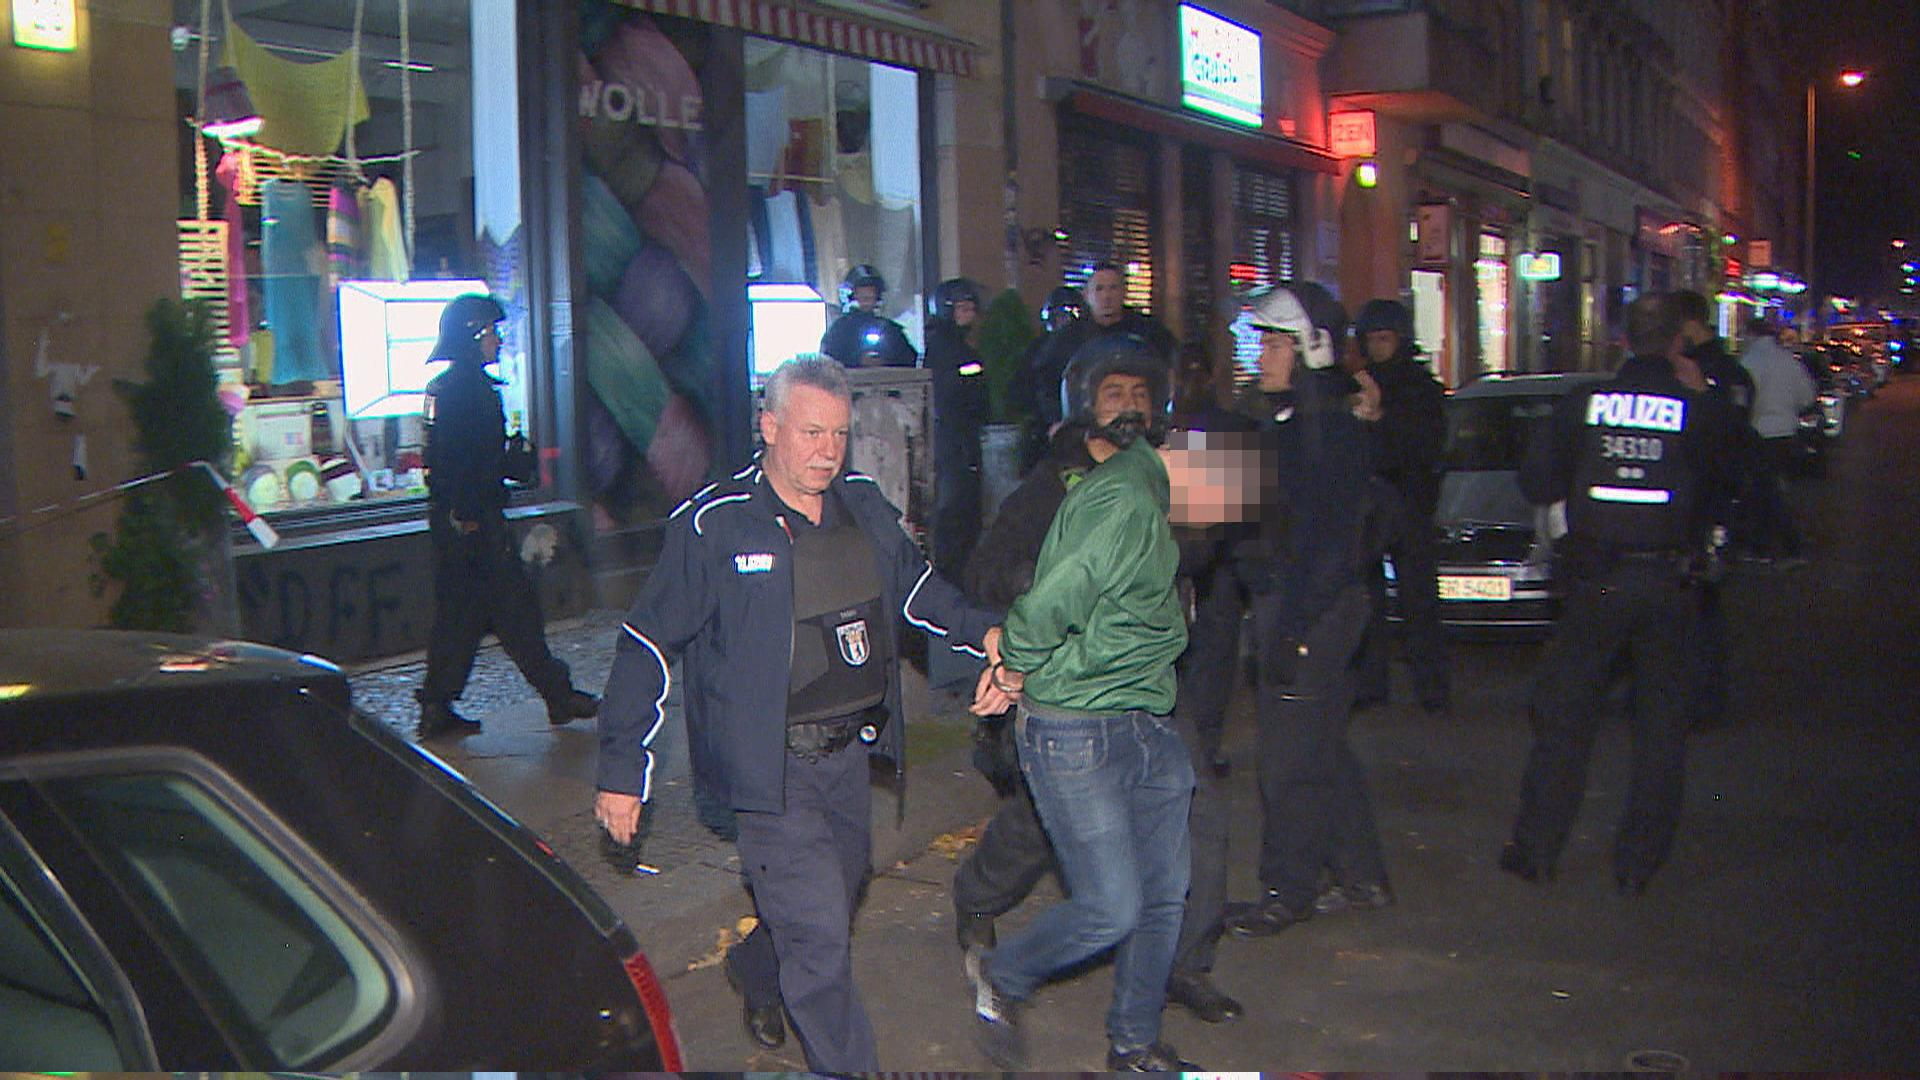 Cash Pool Leipzig Rb Leipzig V Celtic Chaos Eights Arrests After Berlin Bar Brawl